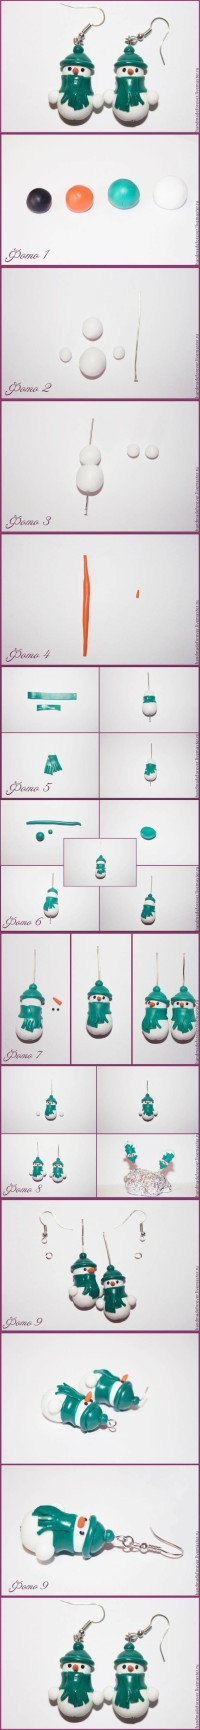 DIY Clay Snowman Earrings | DIY